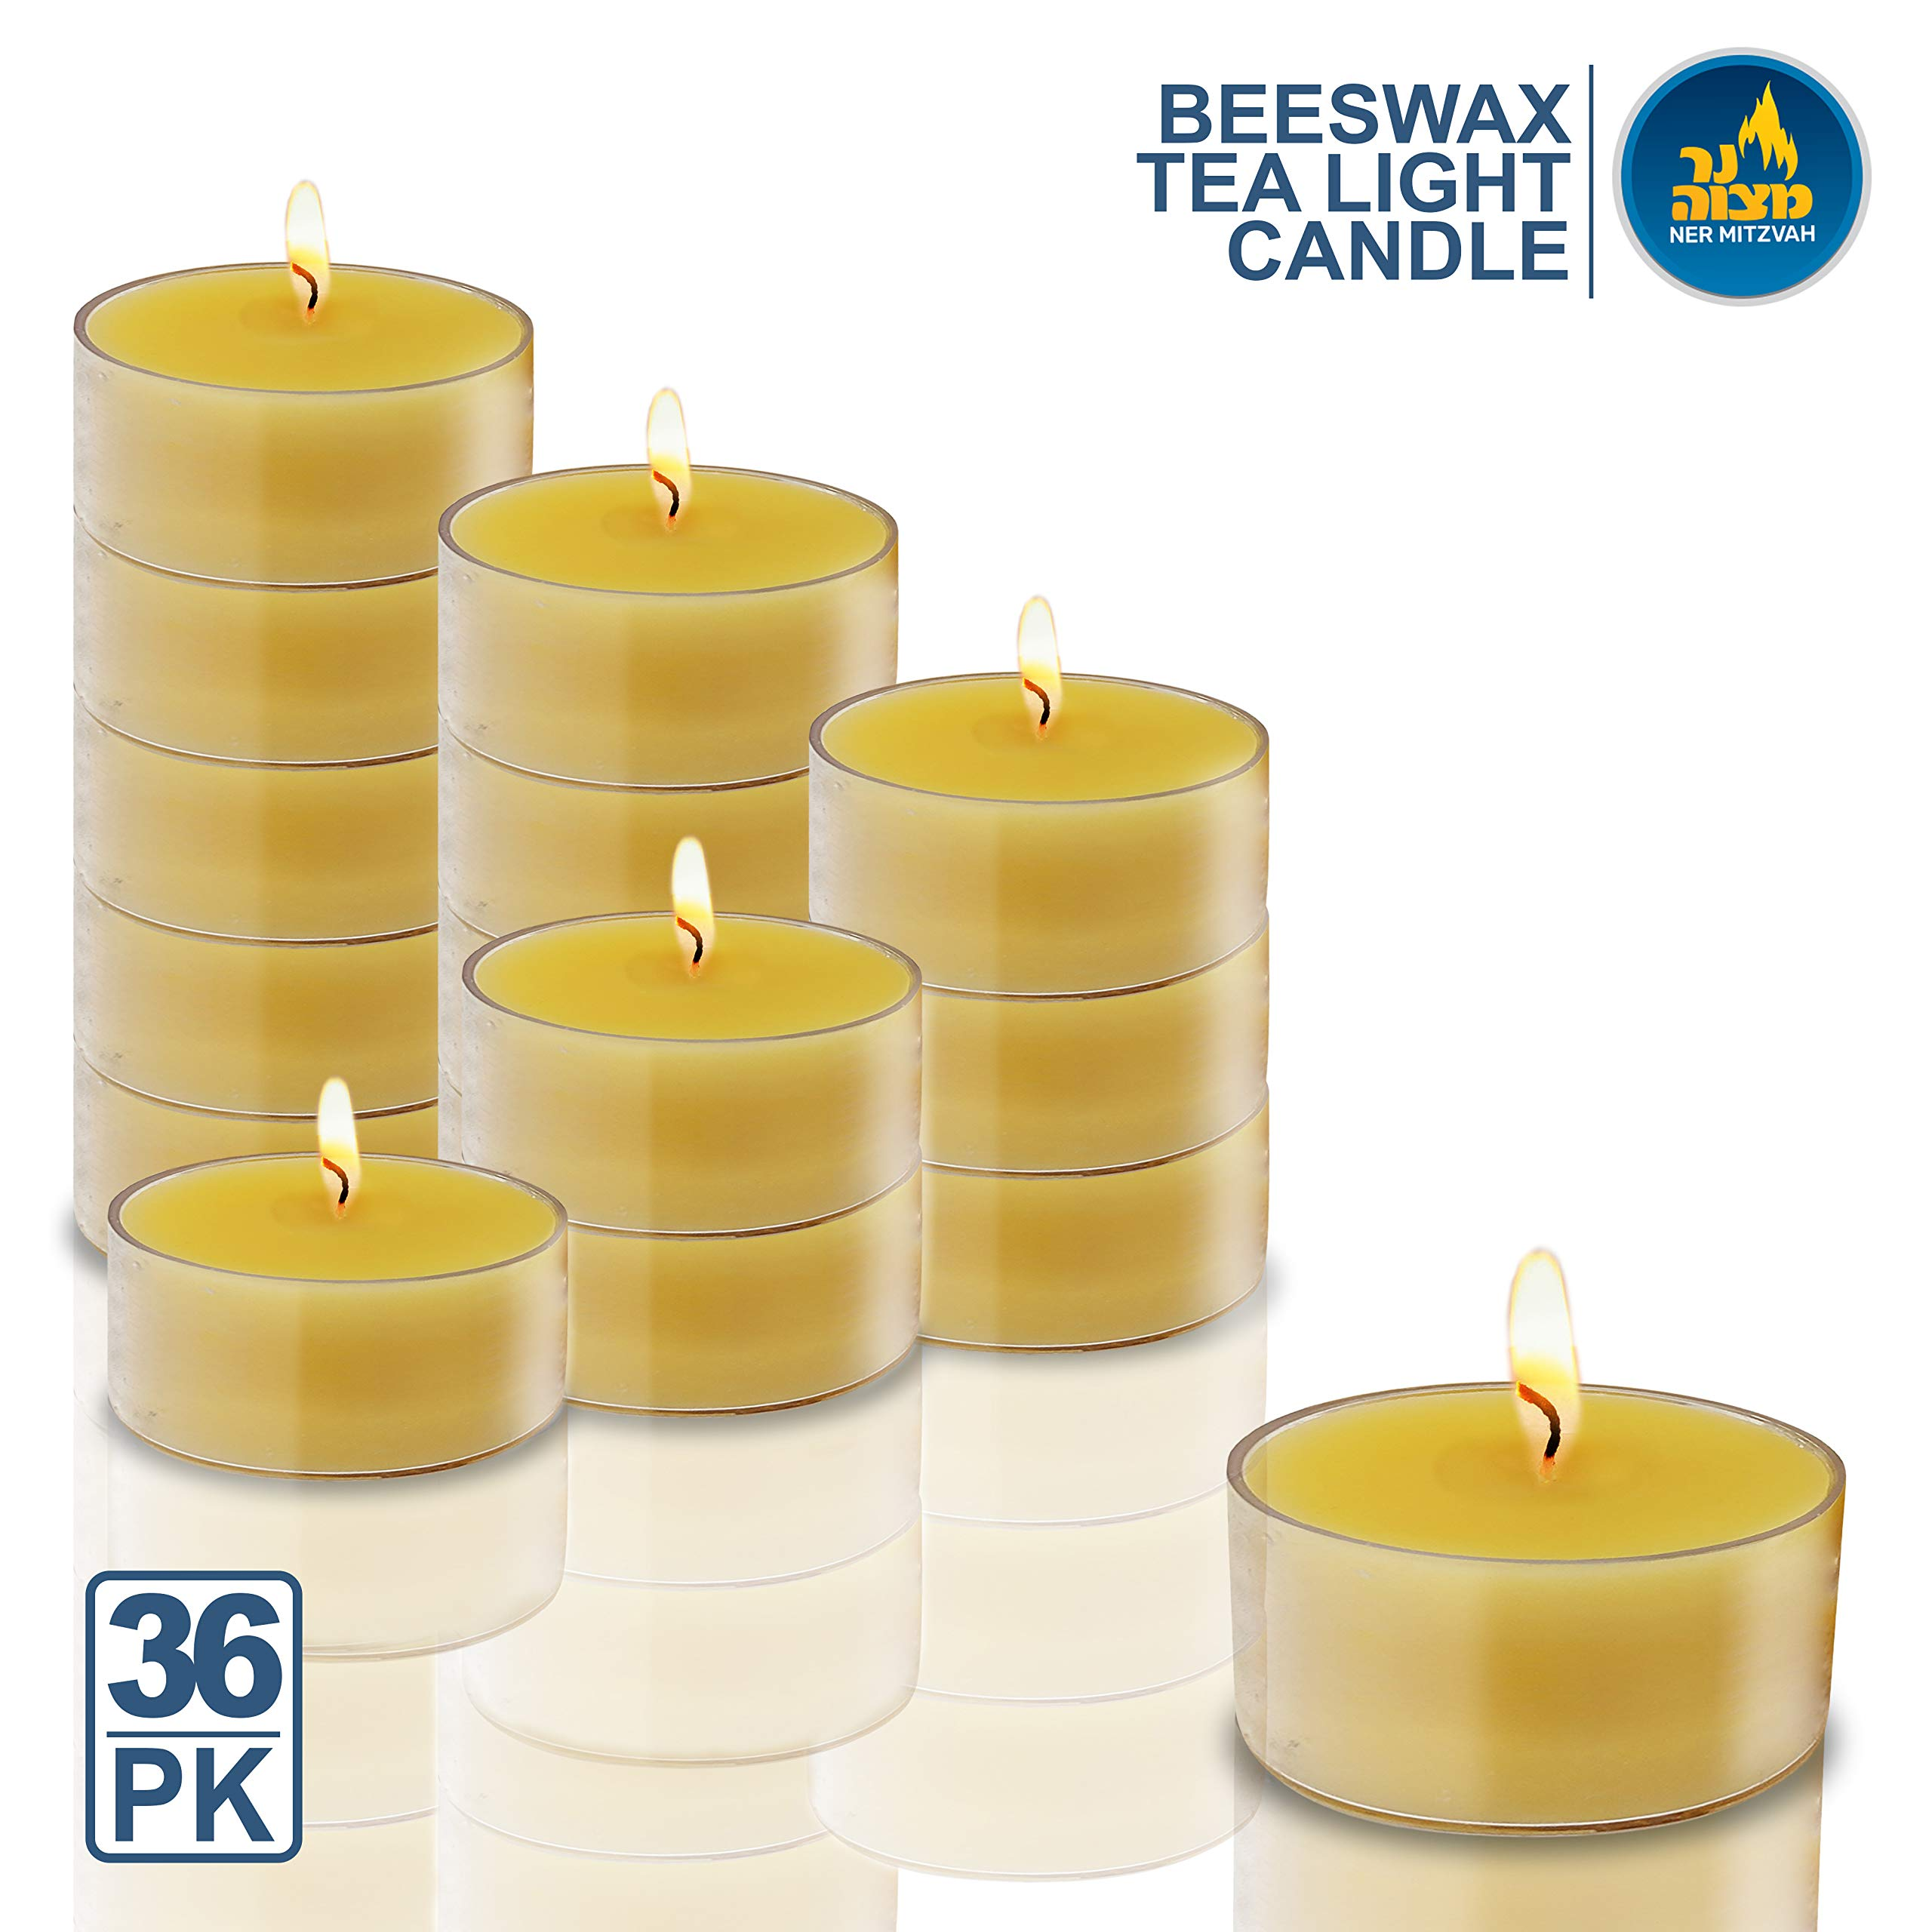 Ner Mitzvah Pure Beeswax Tealight Candles Handmade in USA - 36 Pack - 4 Hour Burn Time, Clear Cup by Ner Mitzvah